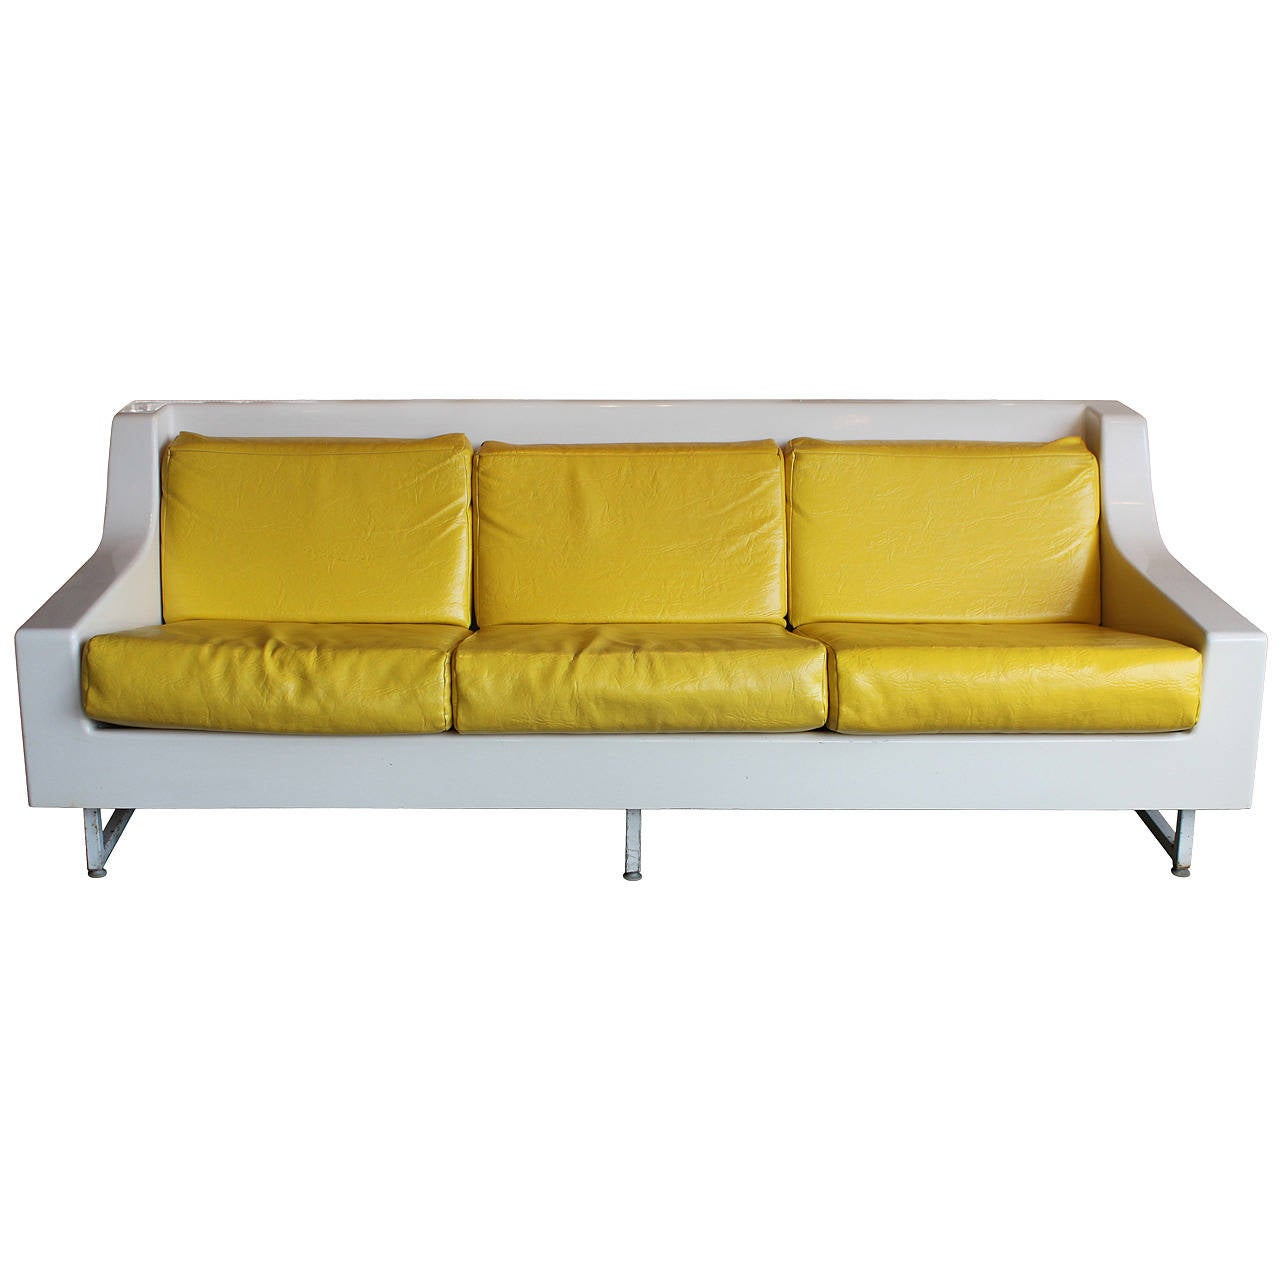 Convert Indoor Sofa Outdoor 28 Images Classic Day Bed